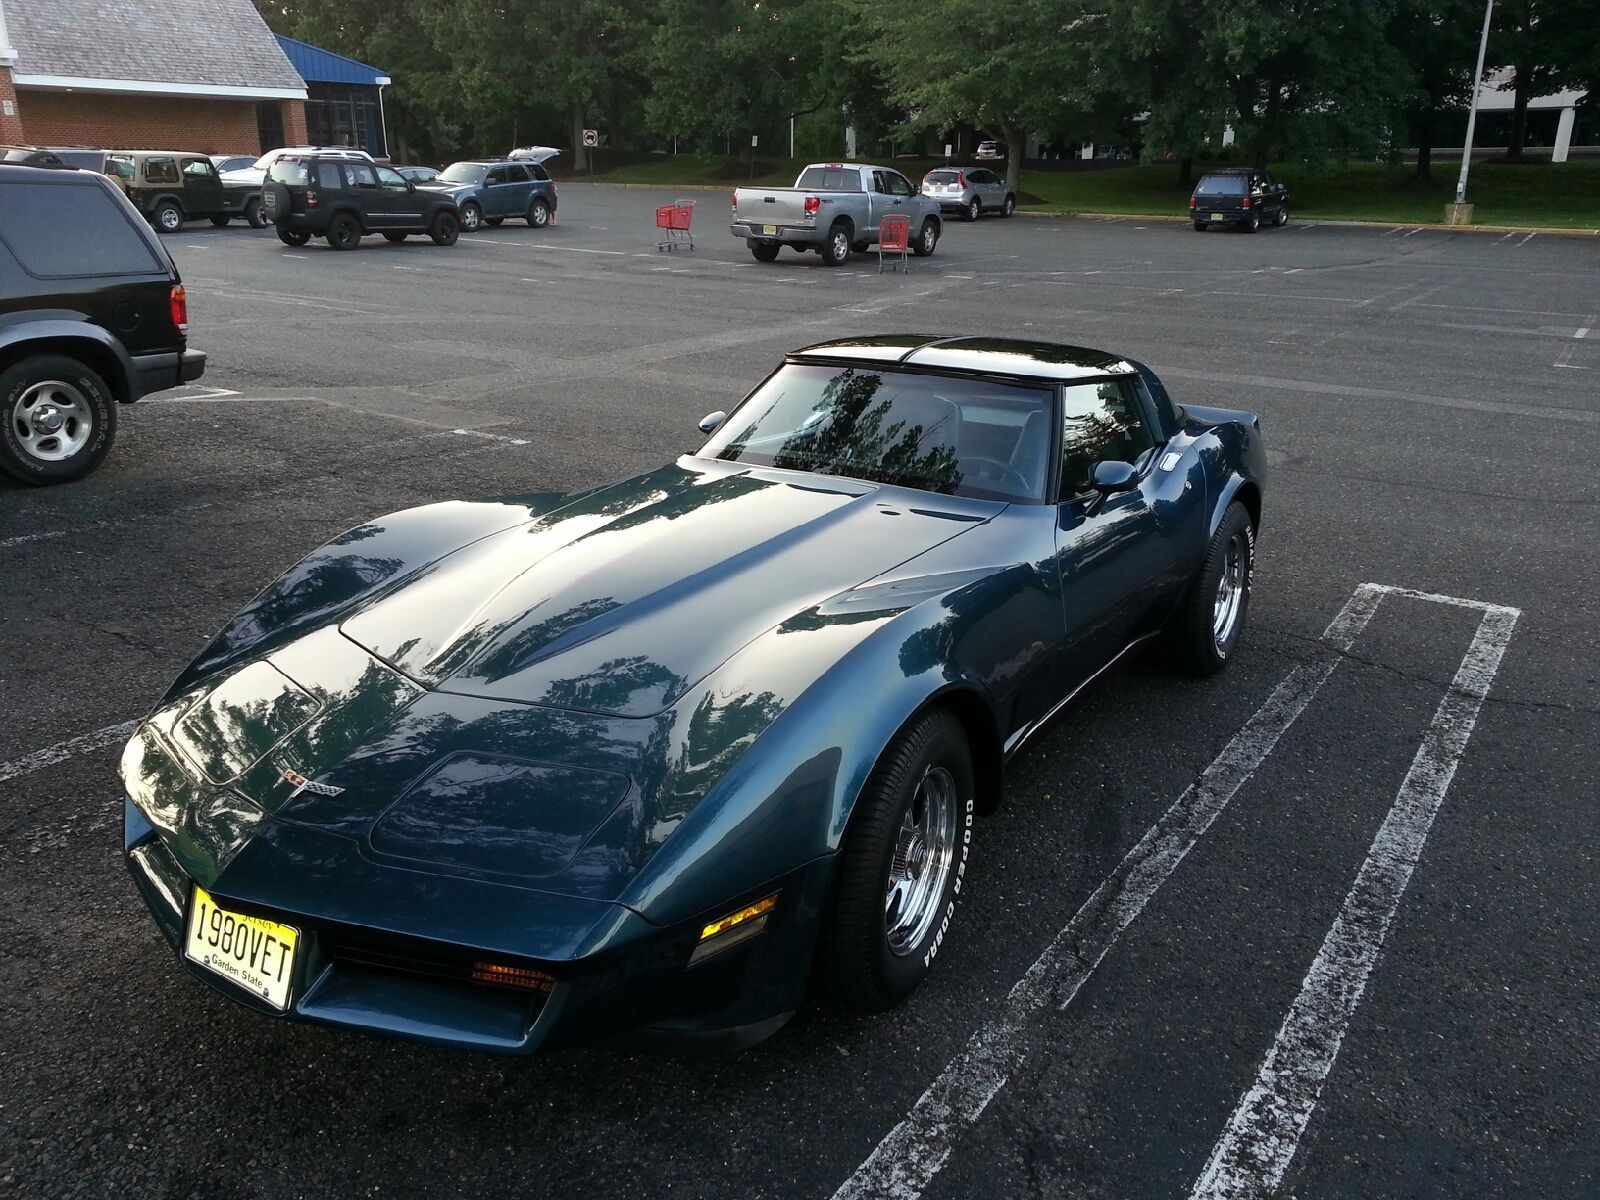 1980 Corvette For Sale >> 1980 Corvette L48 Exceptional Condition, Glass Tee Tops, Two Sets of Wheels - Classic Chevrolet ...